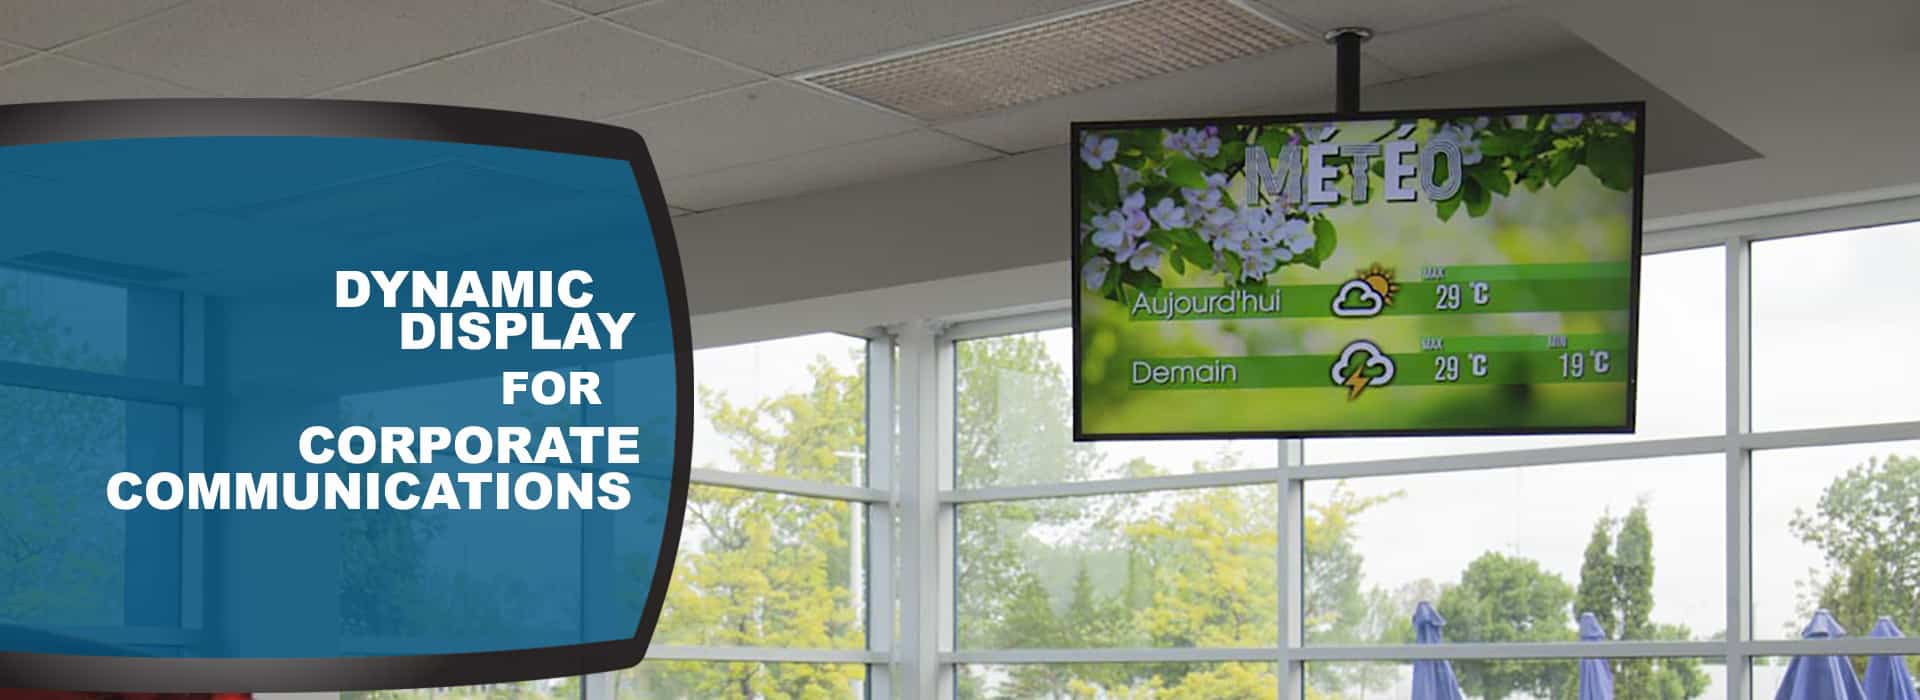 Dynamic Display for Corporate Communication